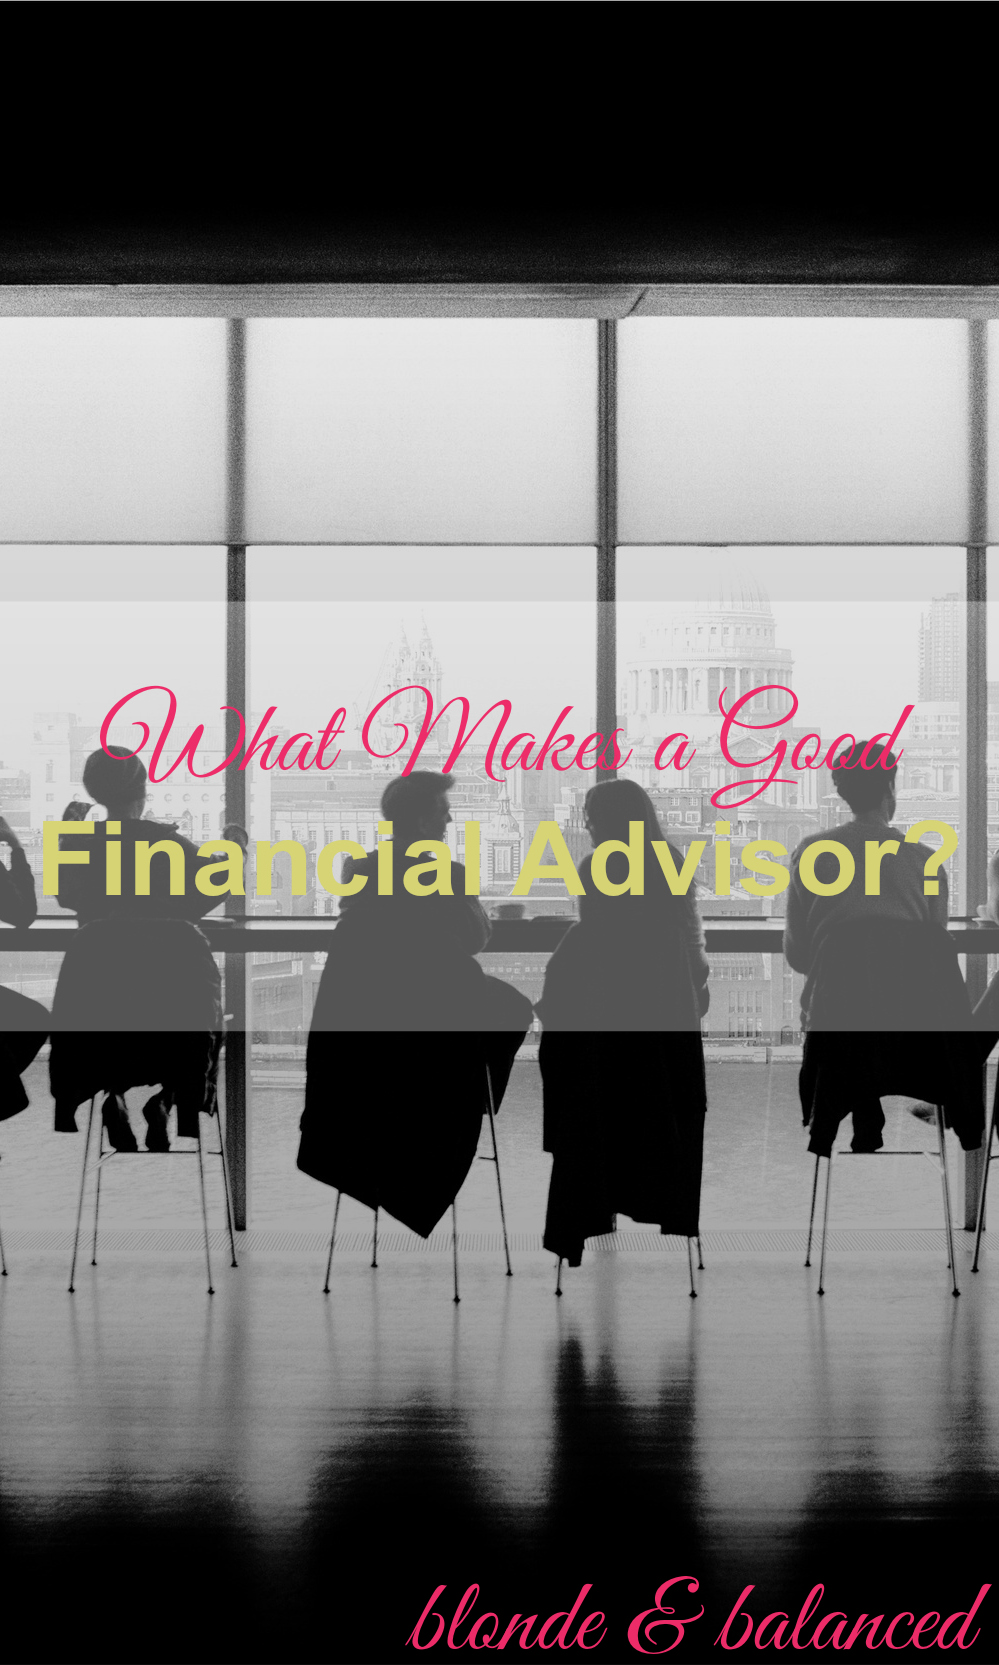 how to find the financial advisors of a company